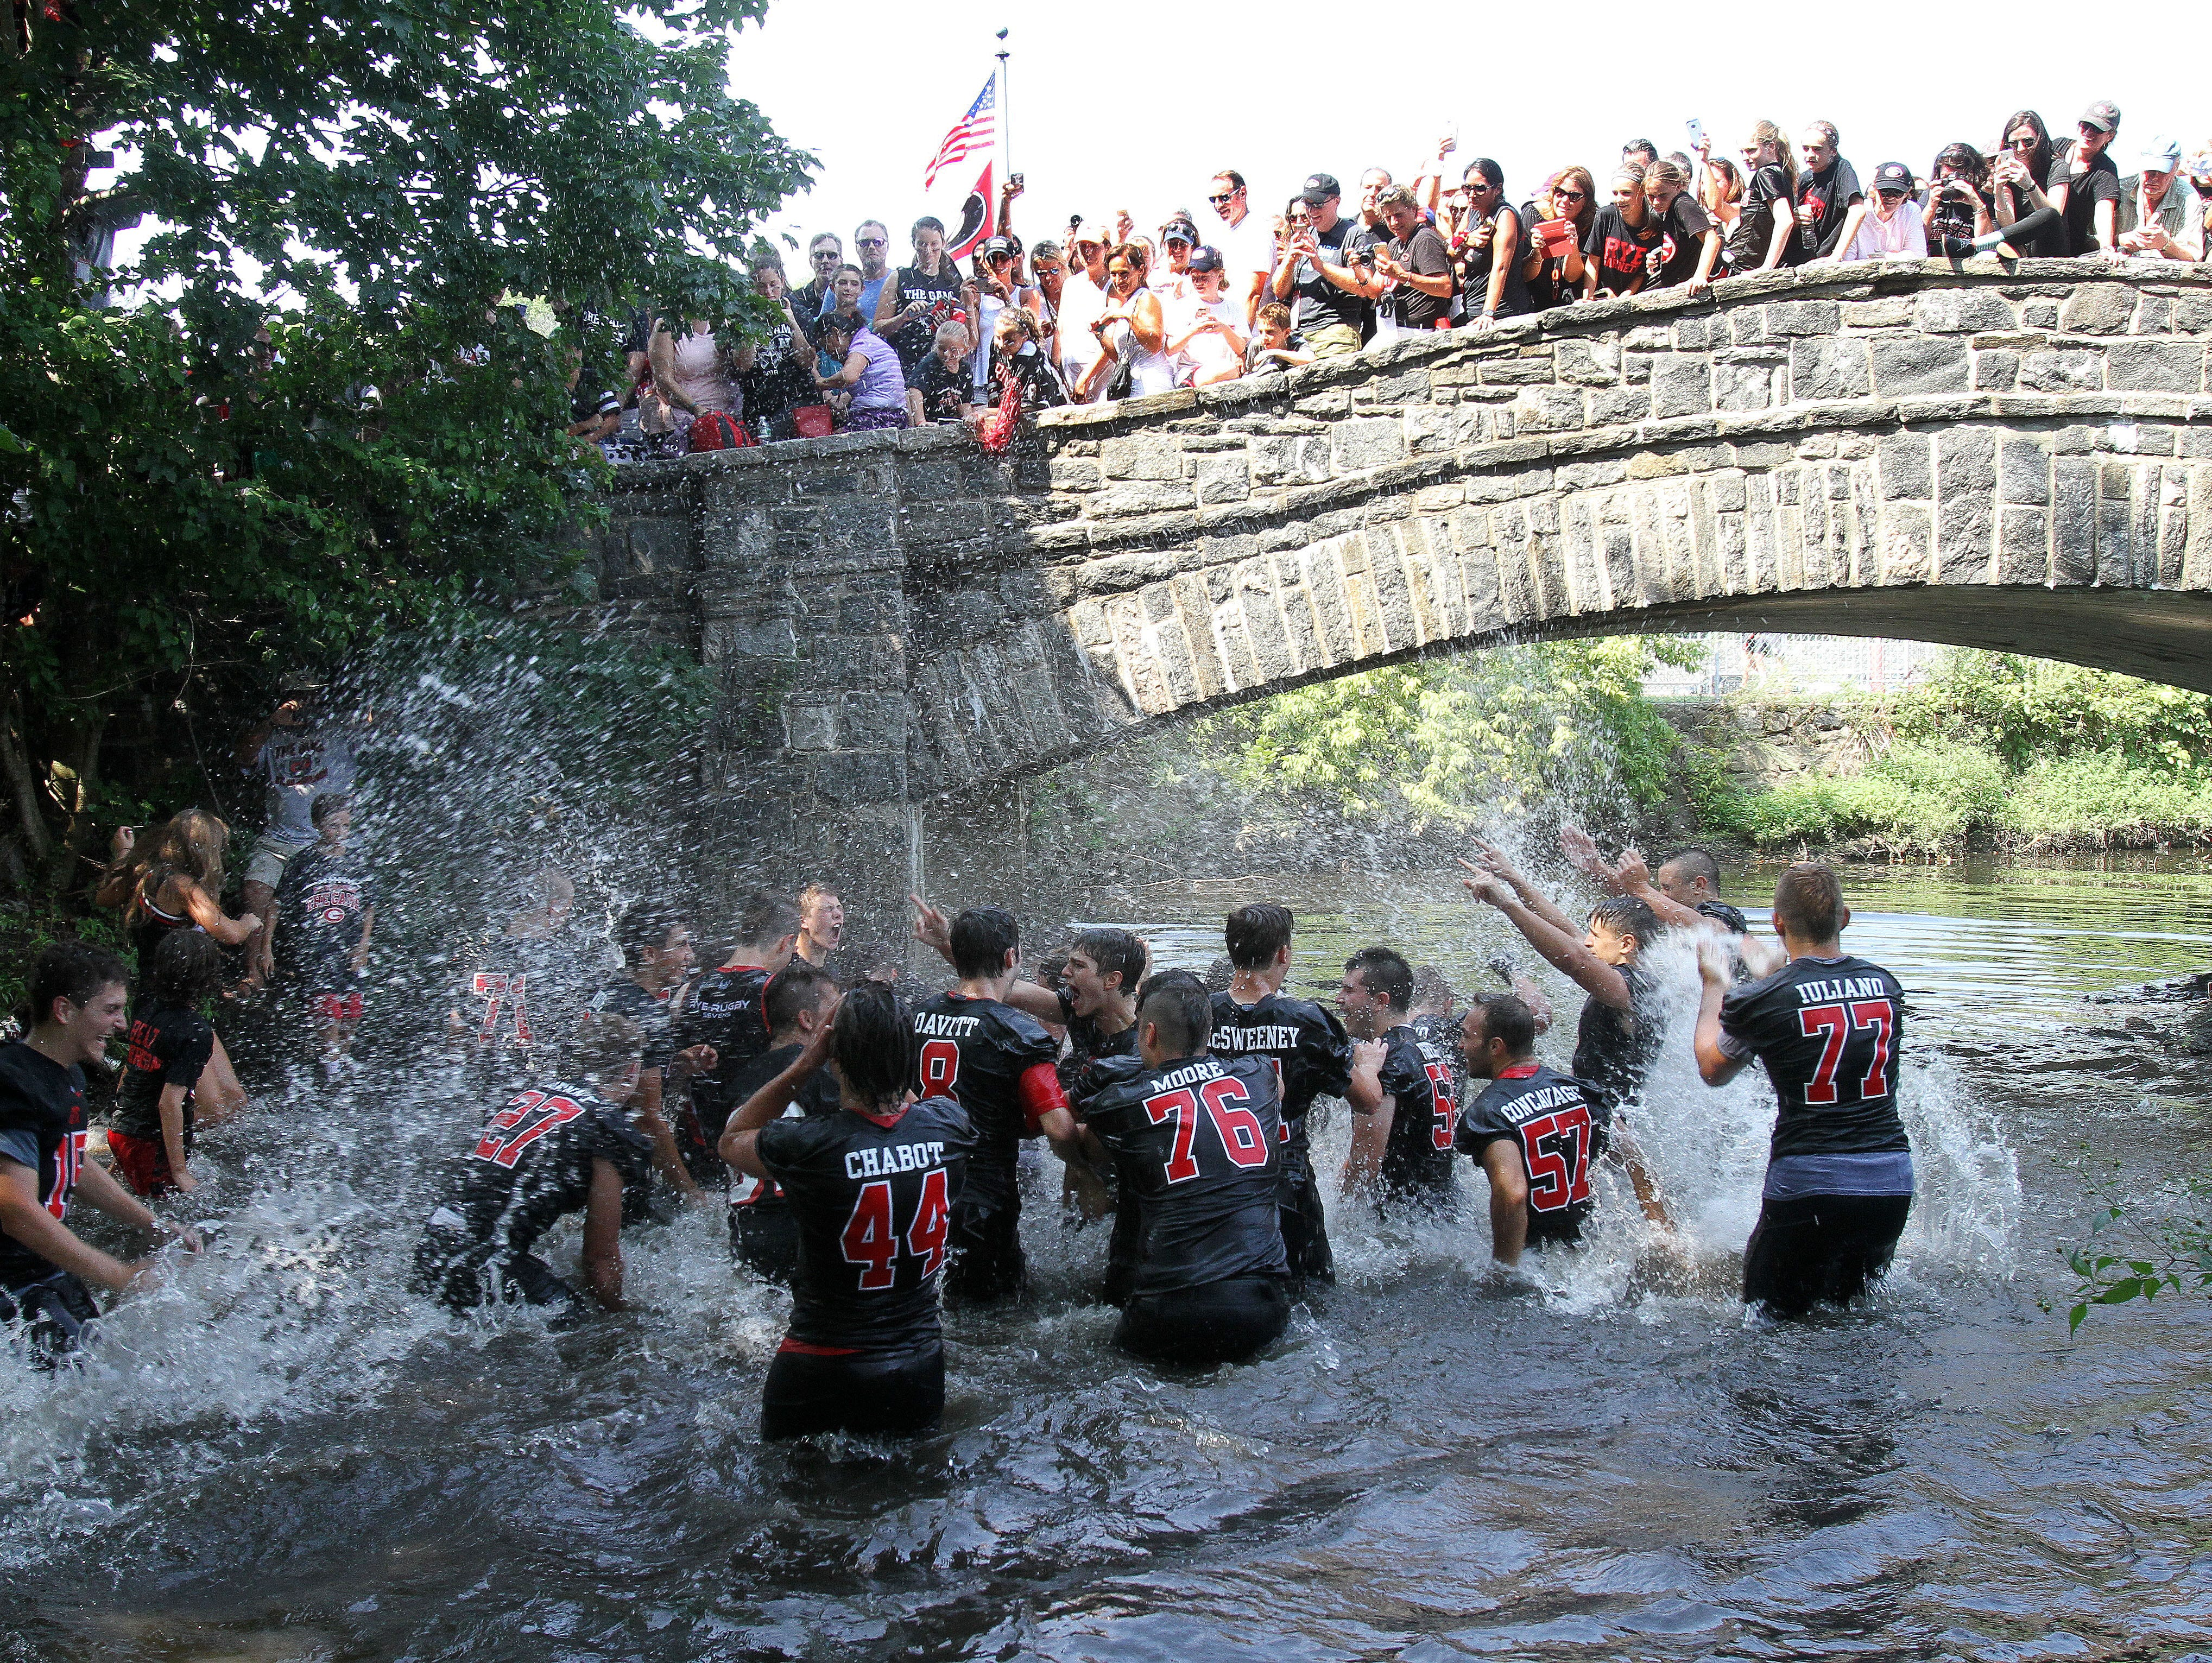 Rye players jump into the creek alongside the field as they celebrate their 42-12 victory over Harrison in the annual rivalry game at Nugent Stadium at Rye High School Sept. 10, 2016.